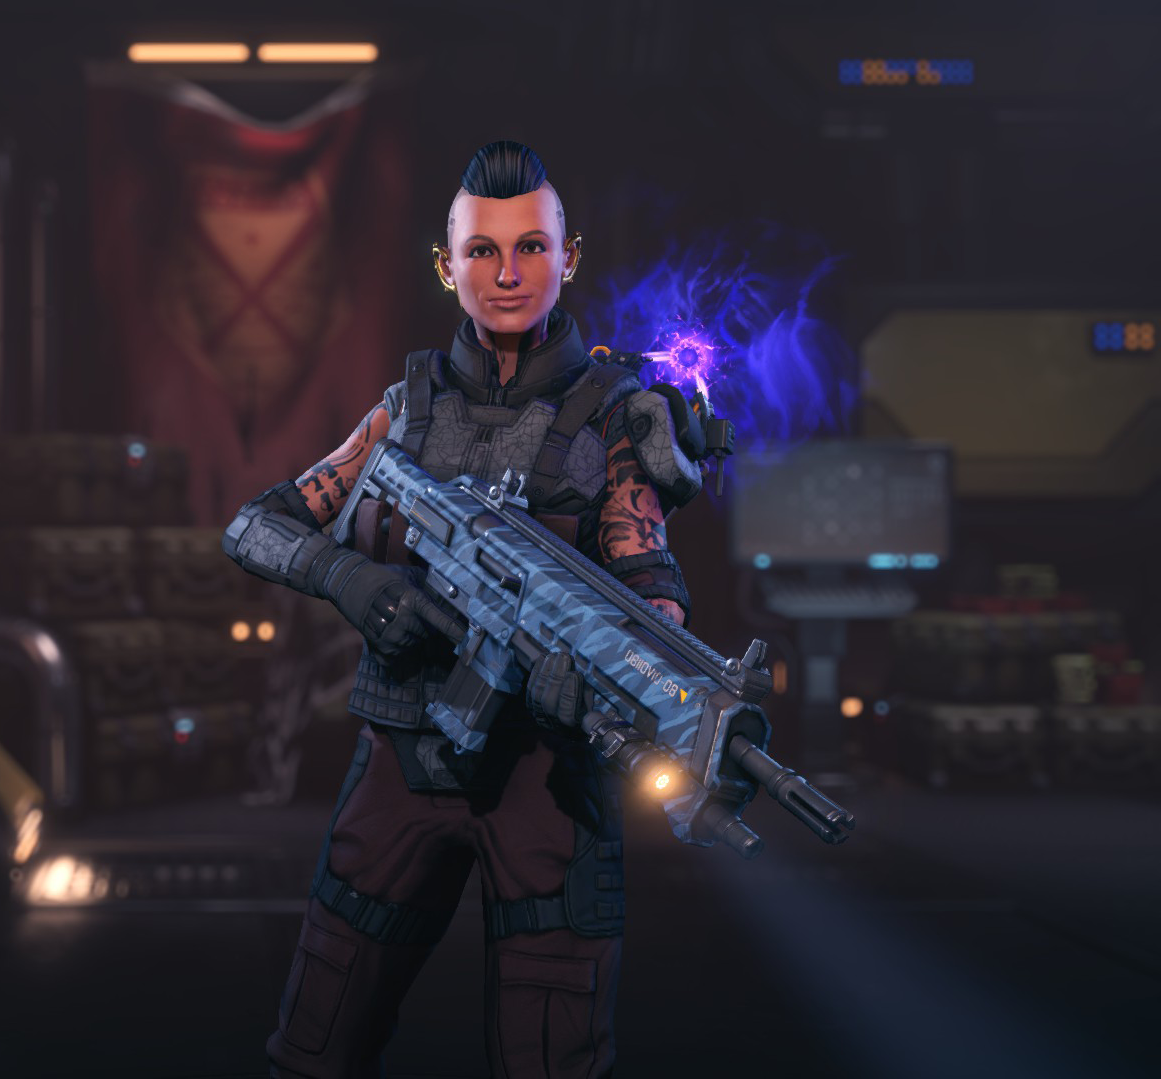 Mass Effect's Jack Appearance Pack - Скриншот 2